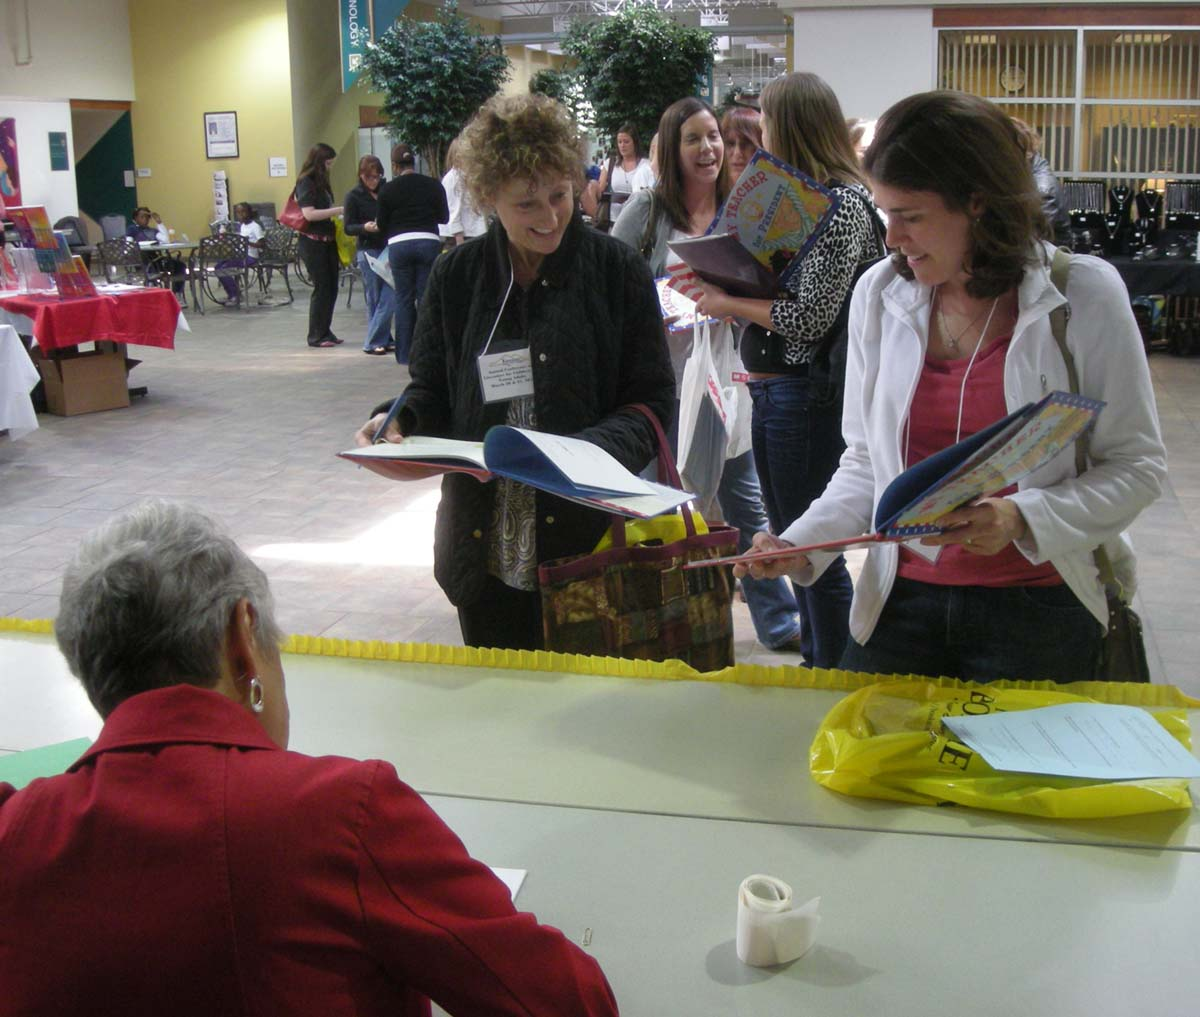 Kay signing for attendees